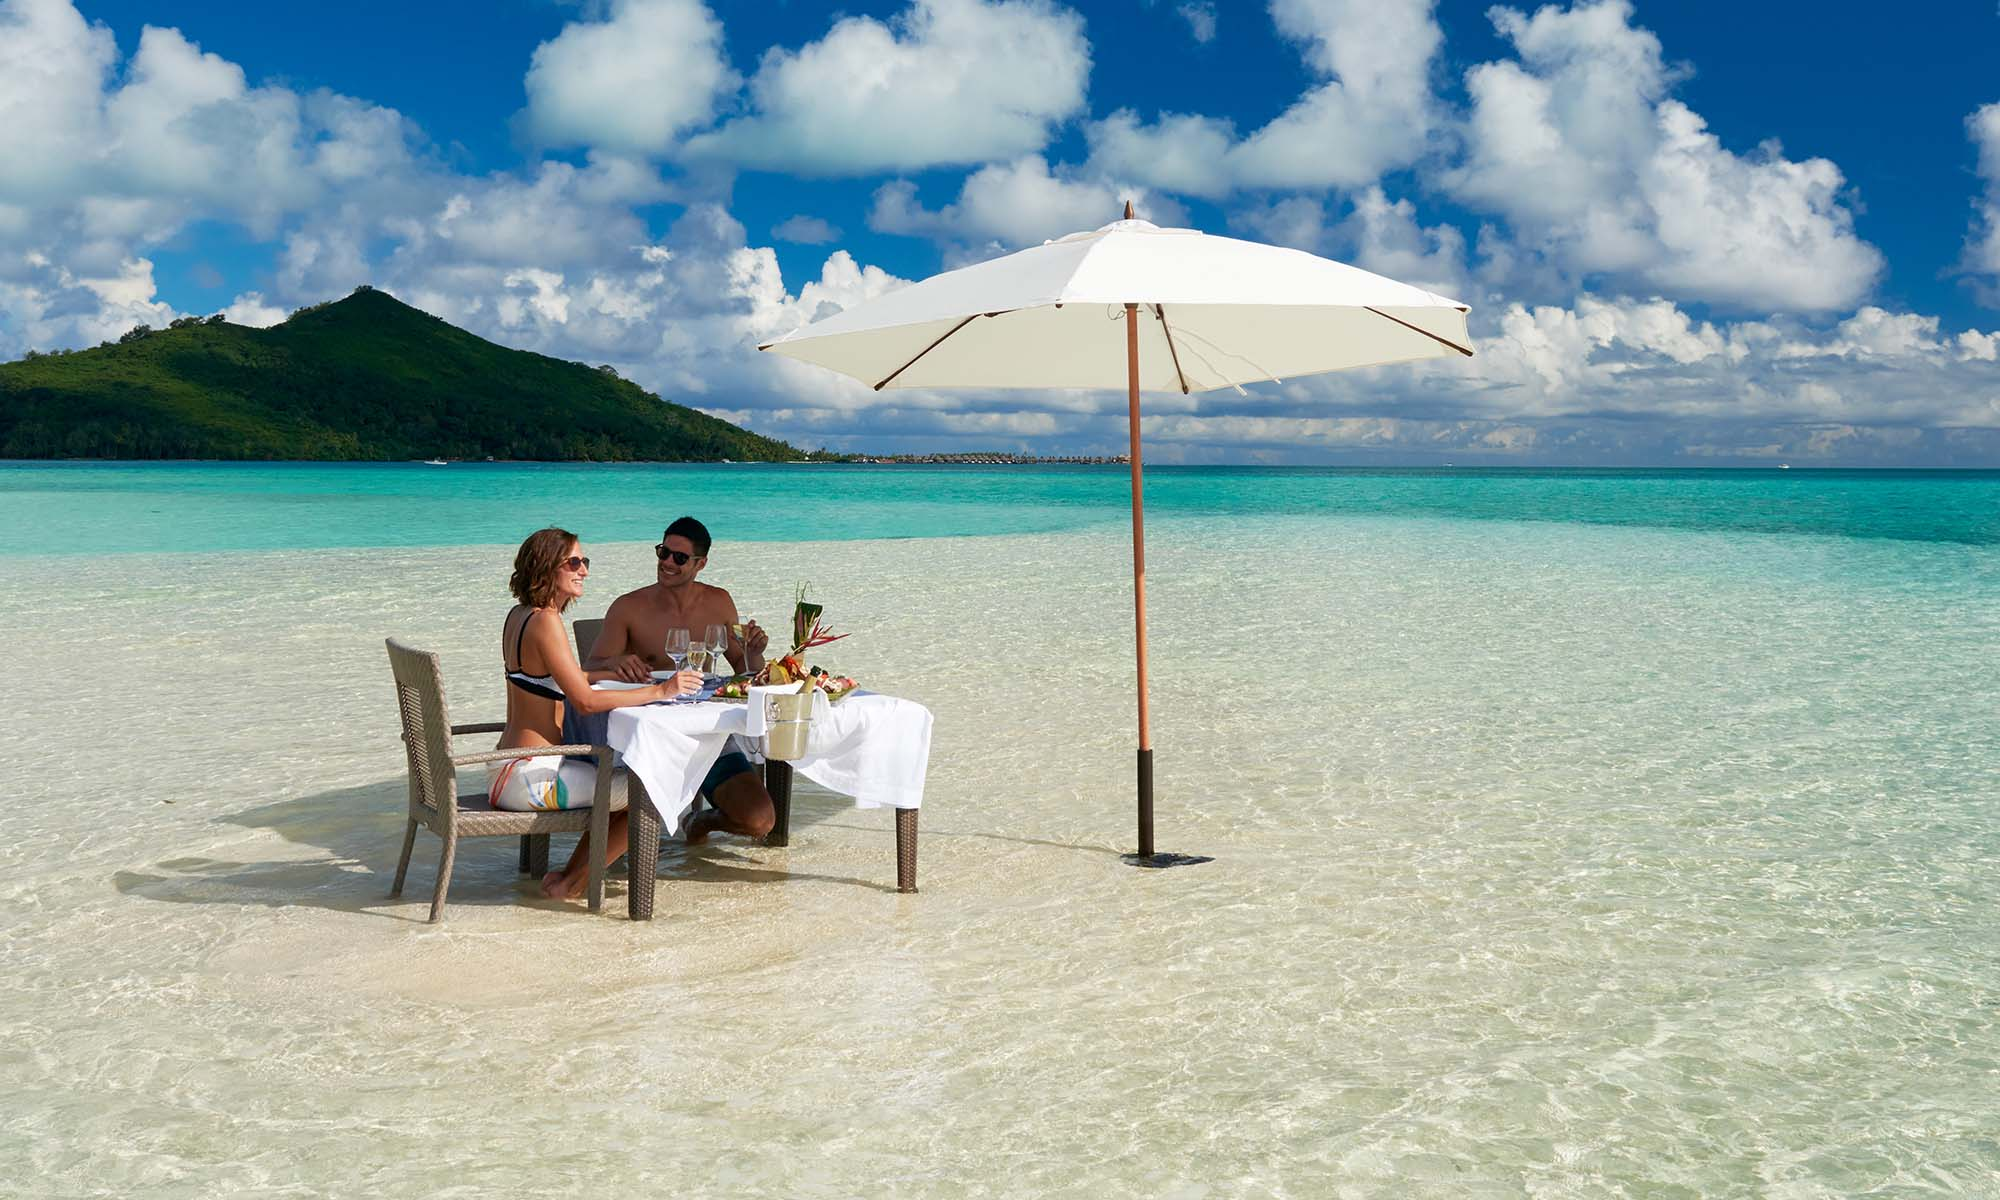 Snorkeling In Bora Enjoy A Private Meal With Your Feet The Water